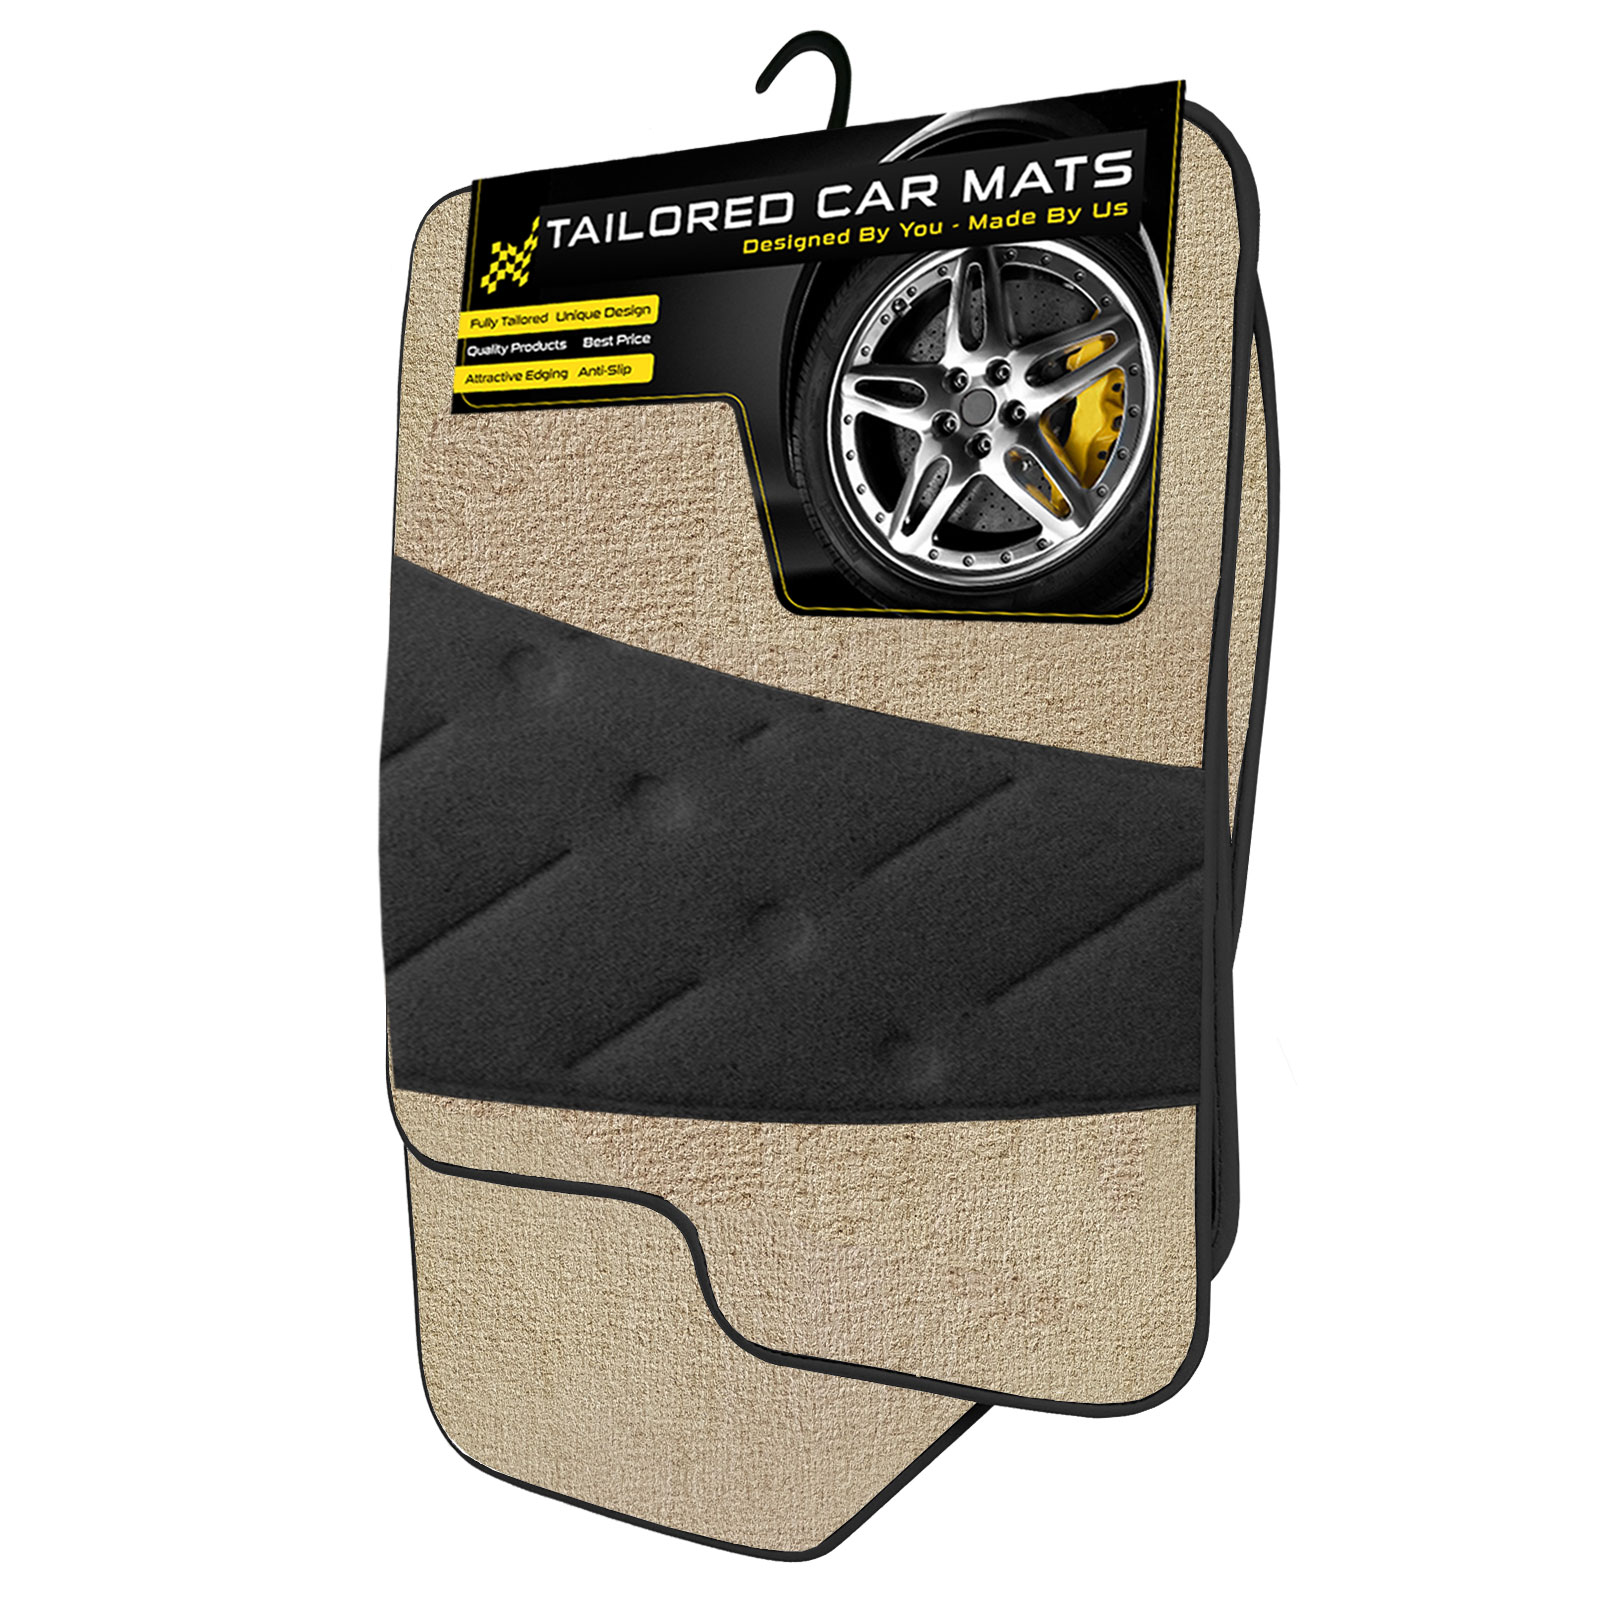 Tailored Deluxe Quality Car Mats Bmw e36 3series Convertible 1992-1998 ** Black